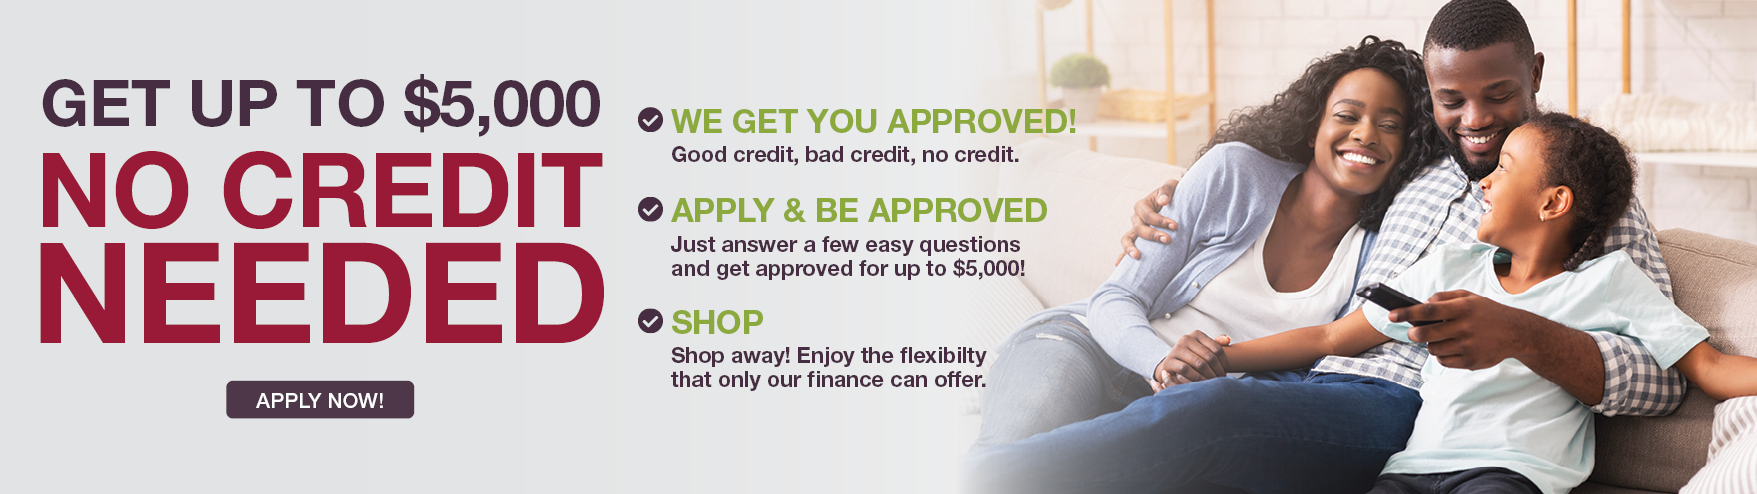 Get started with our pre-approvial now